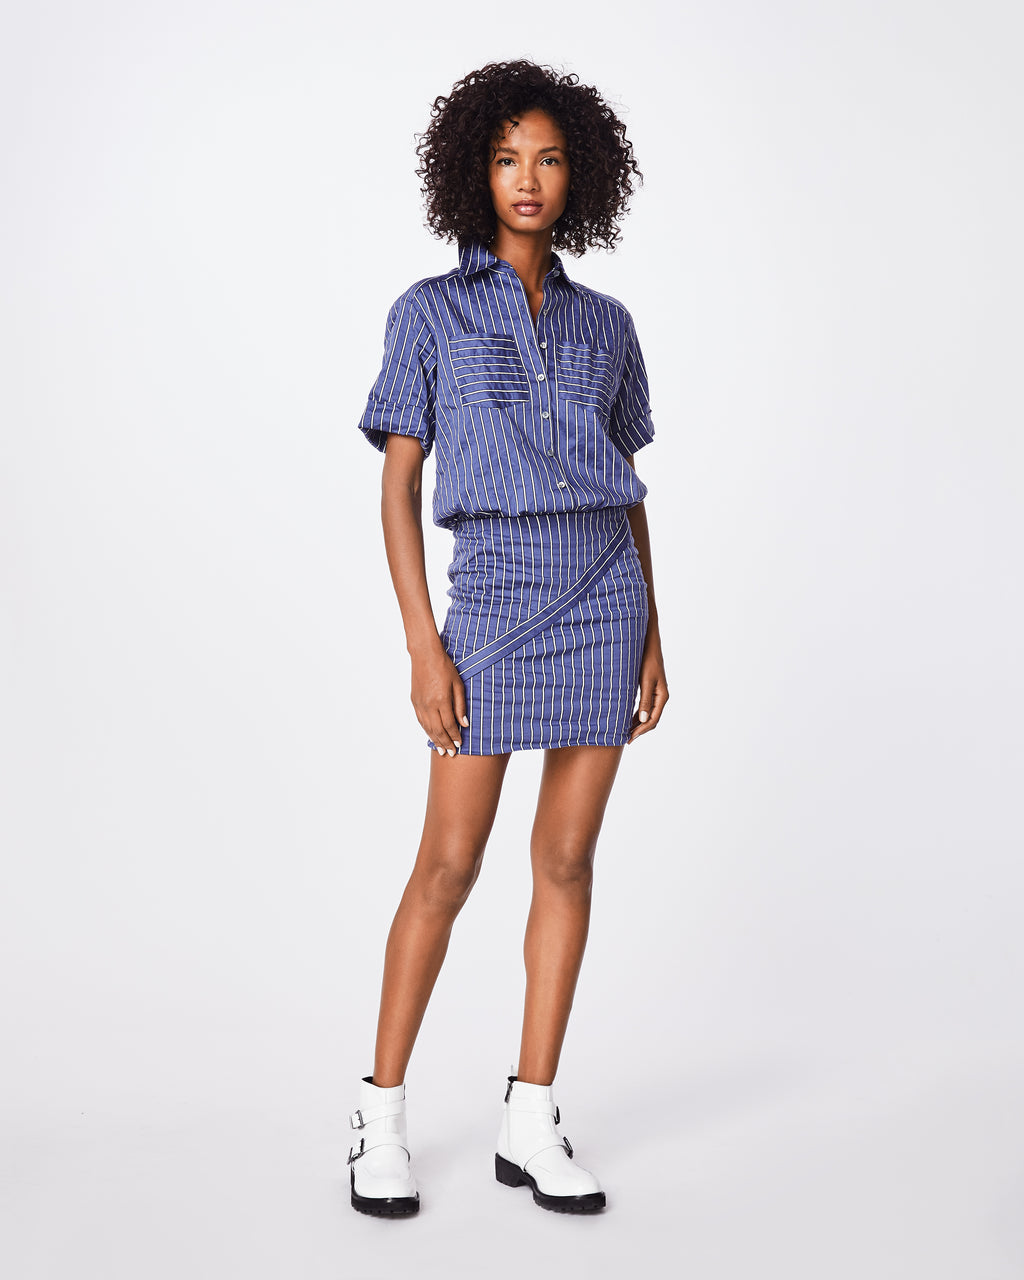 CE10128 - STRIPED COTTON METAL BUTTON DOWN SHIRT DRESS - dresses - short - Work to play. Our iconic Cotton Metal fabric has a wrinkled-like appearance that feels super comfortable, making this button down shirt dress an easy go-to. The collared neck and white striping give off a casual feel, while the skirt's form-fitting fit elevates. Pair with sneakers or boots.